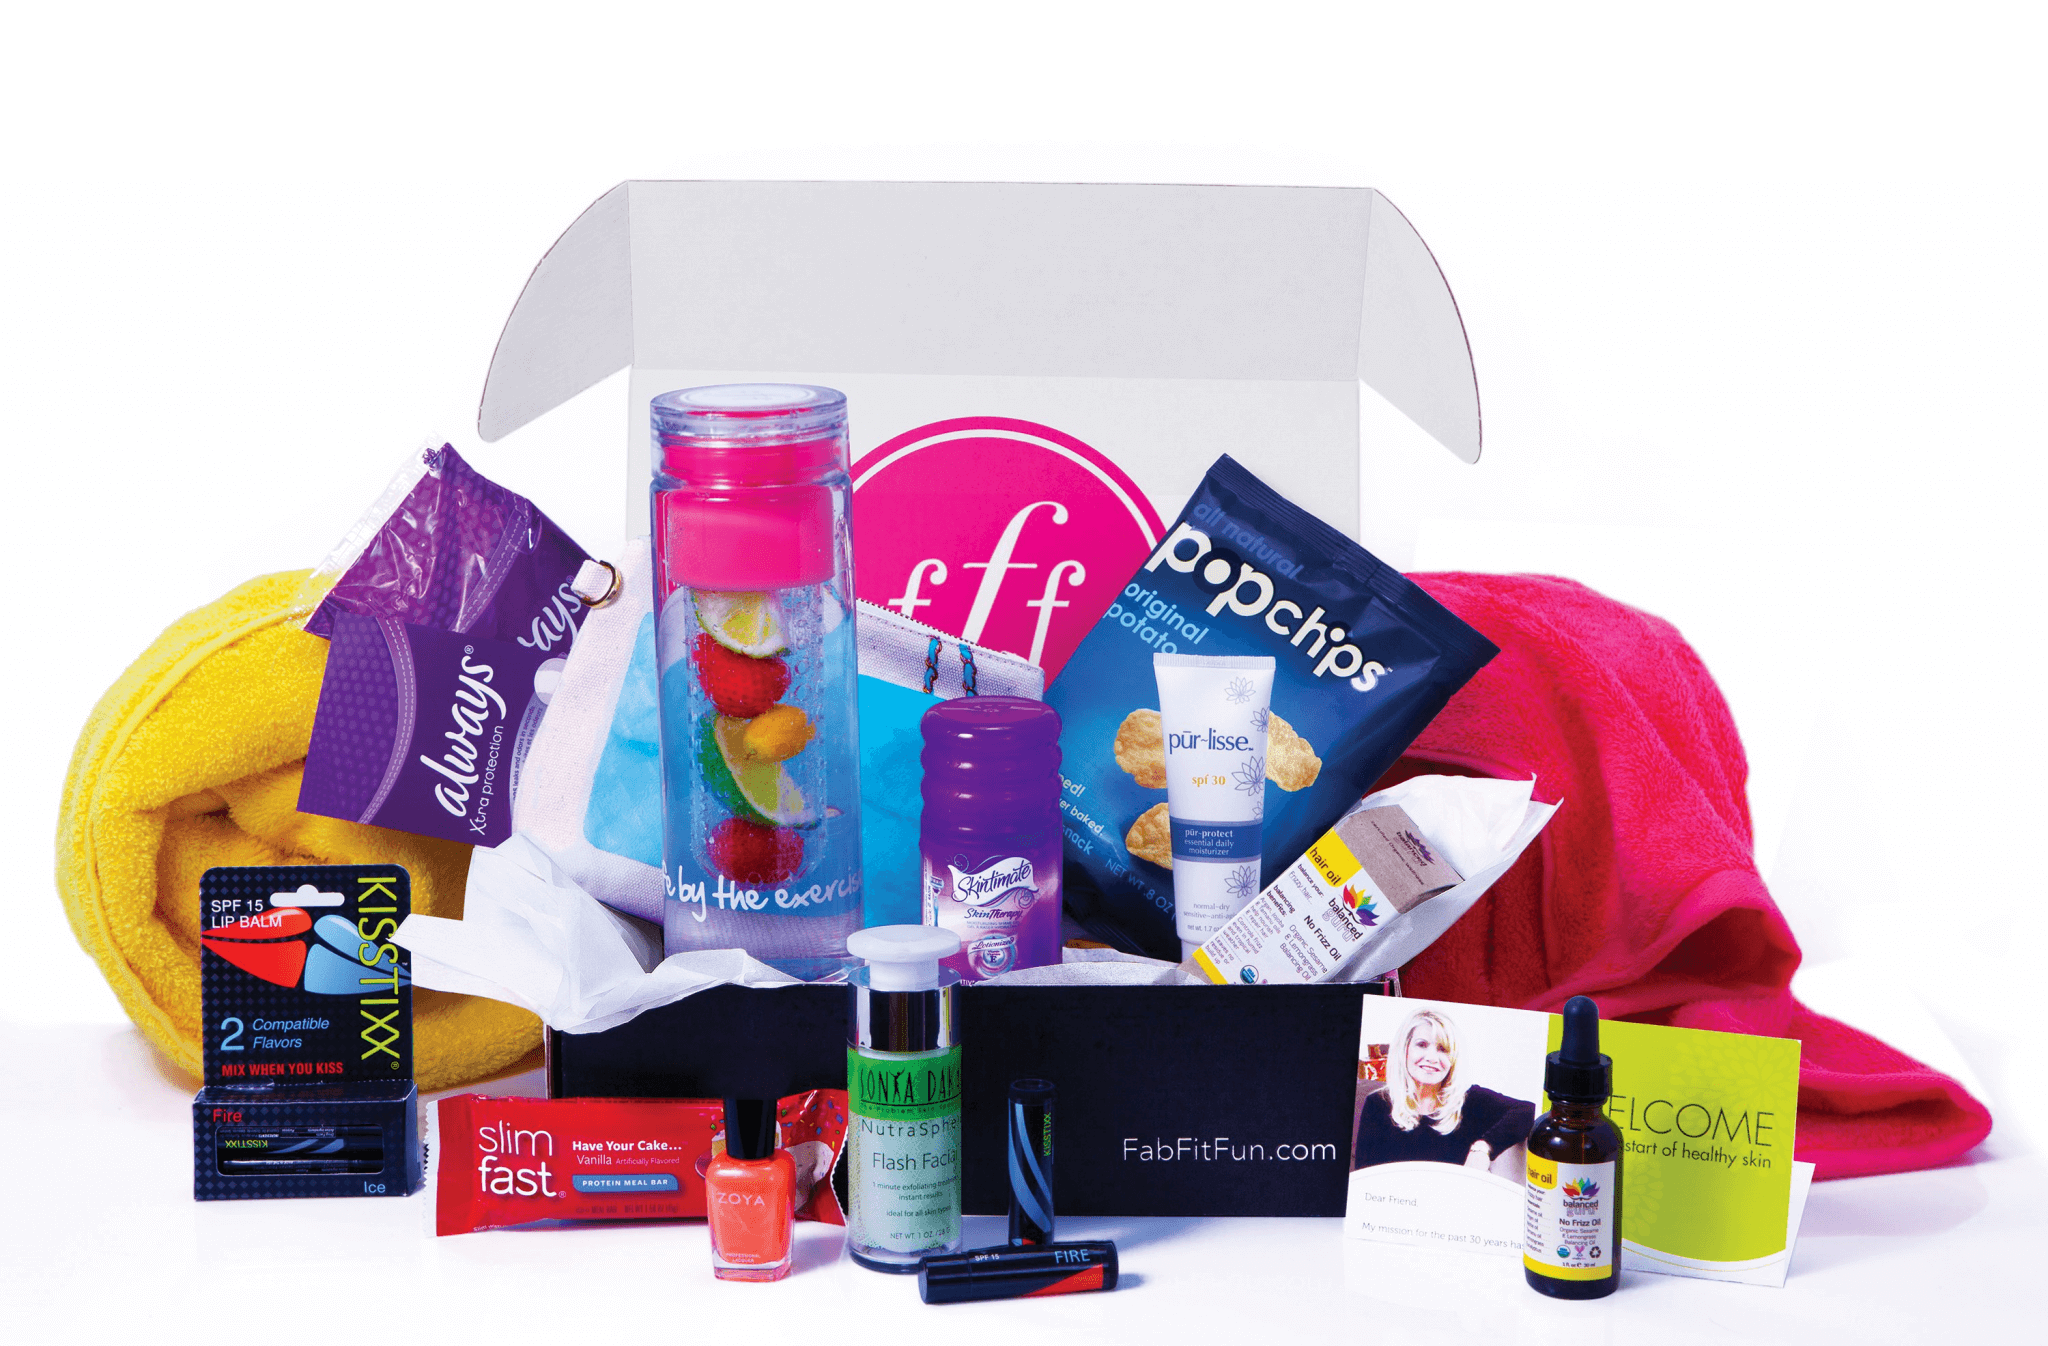 Full Spoilers For The Spring 2017 Fabfitfun Vip Box Are Out Tbh This Looks Like A Totally Amazing I M Really Hy With It